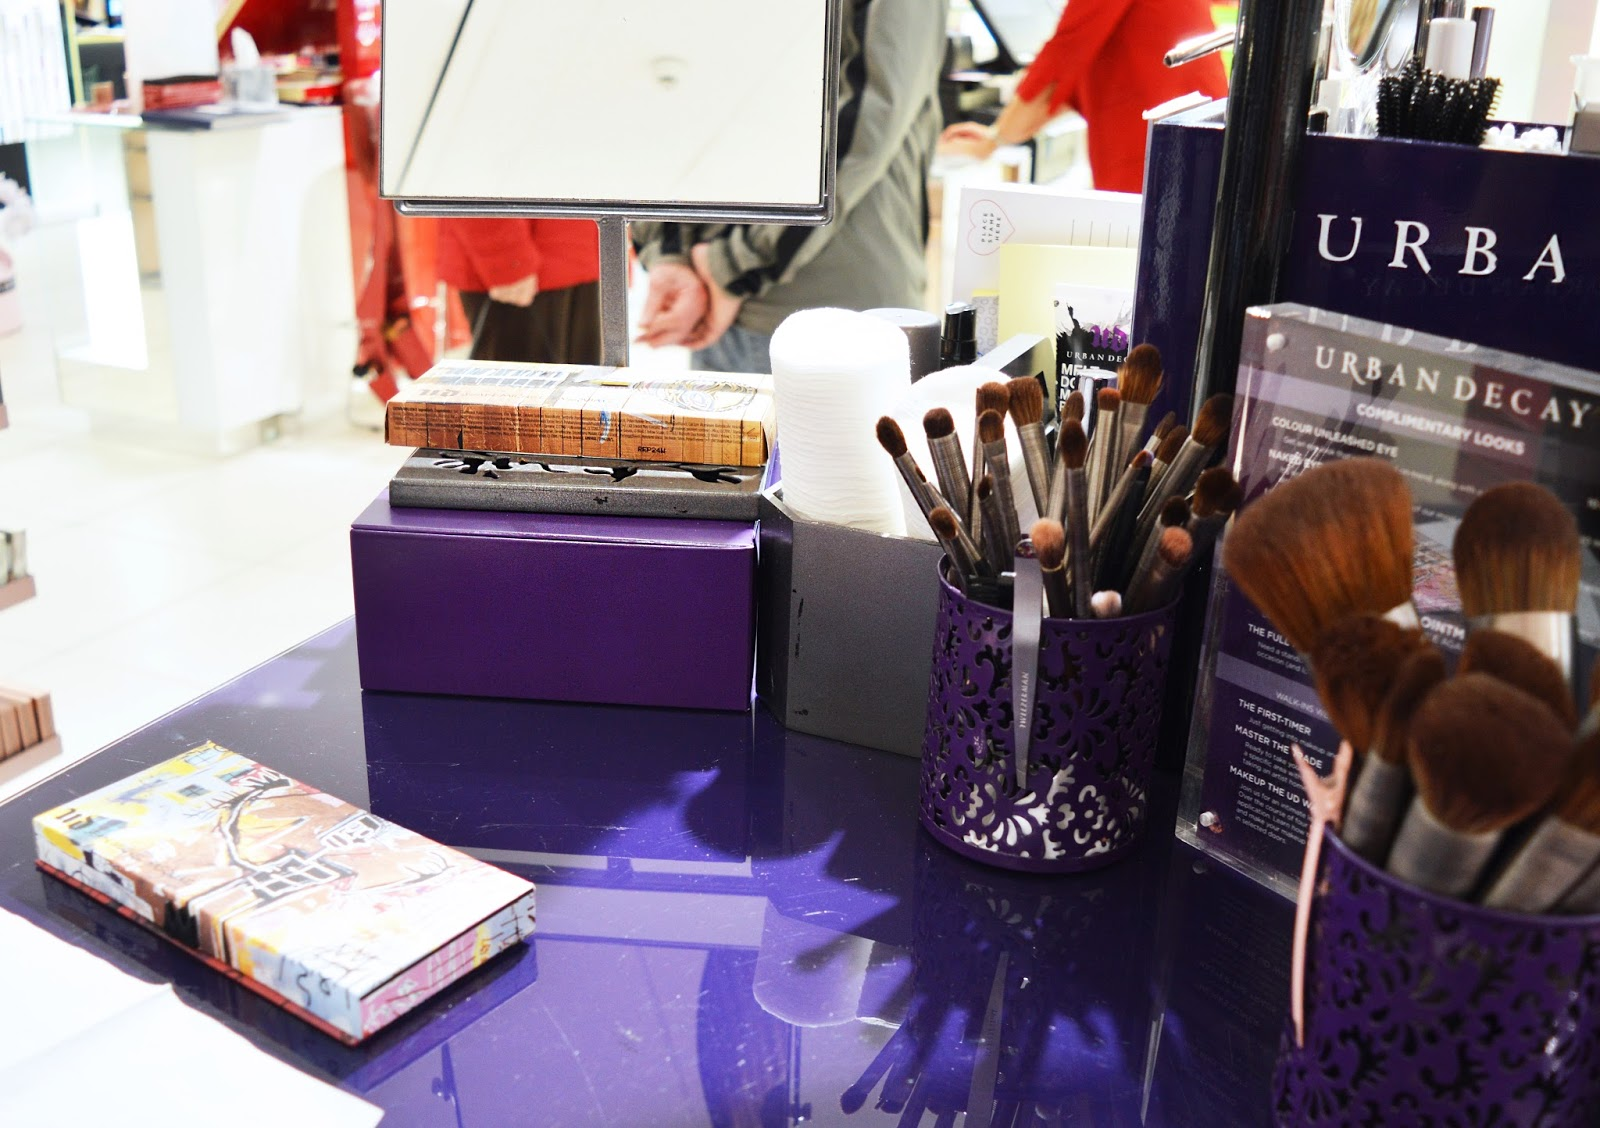 Urban Decay counter with brushes and make-up on